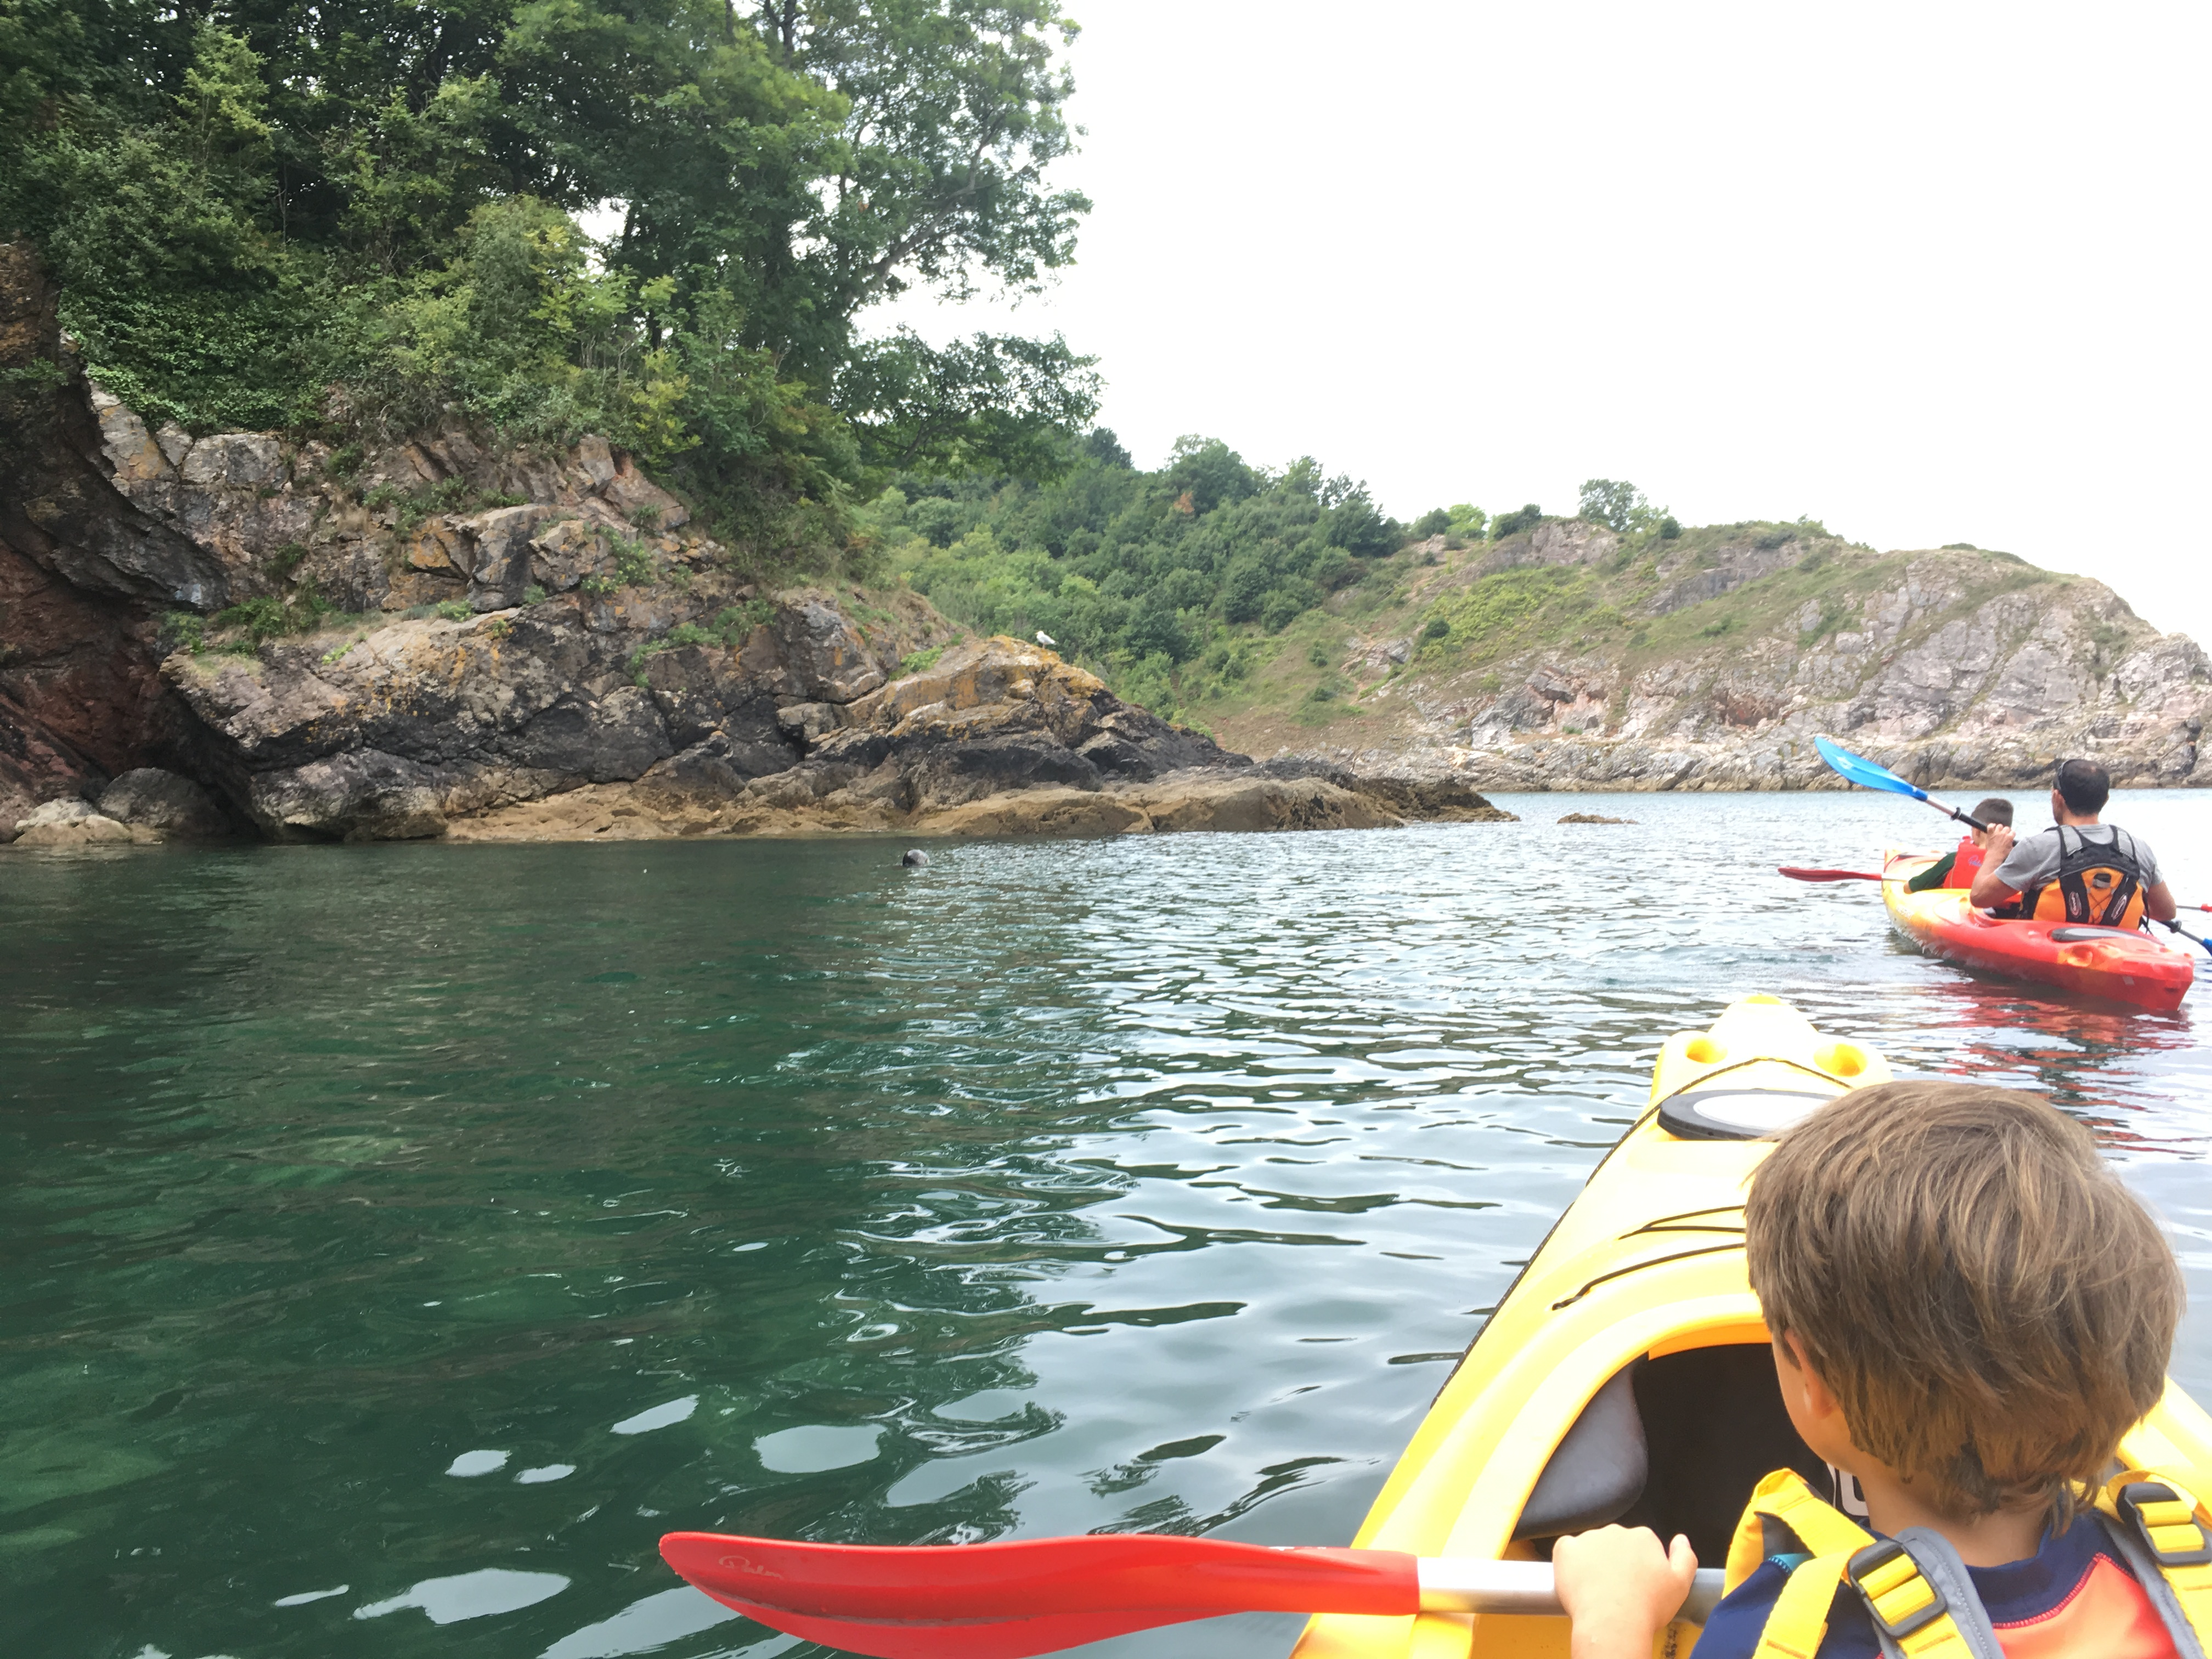 Family Tour to Fishcombe Cove